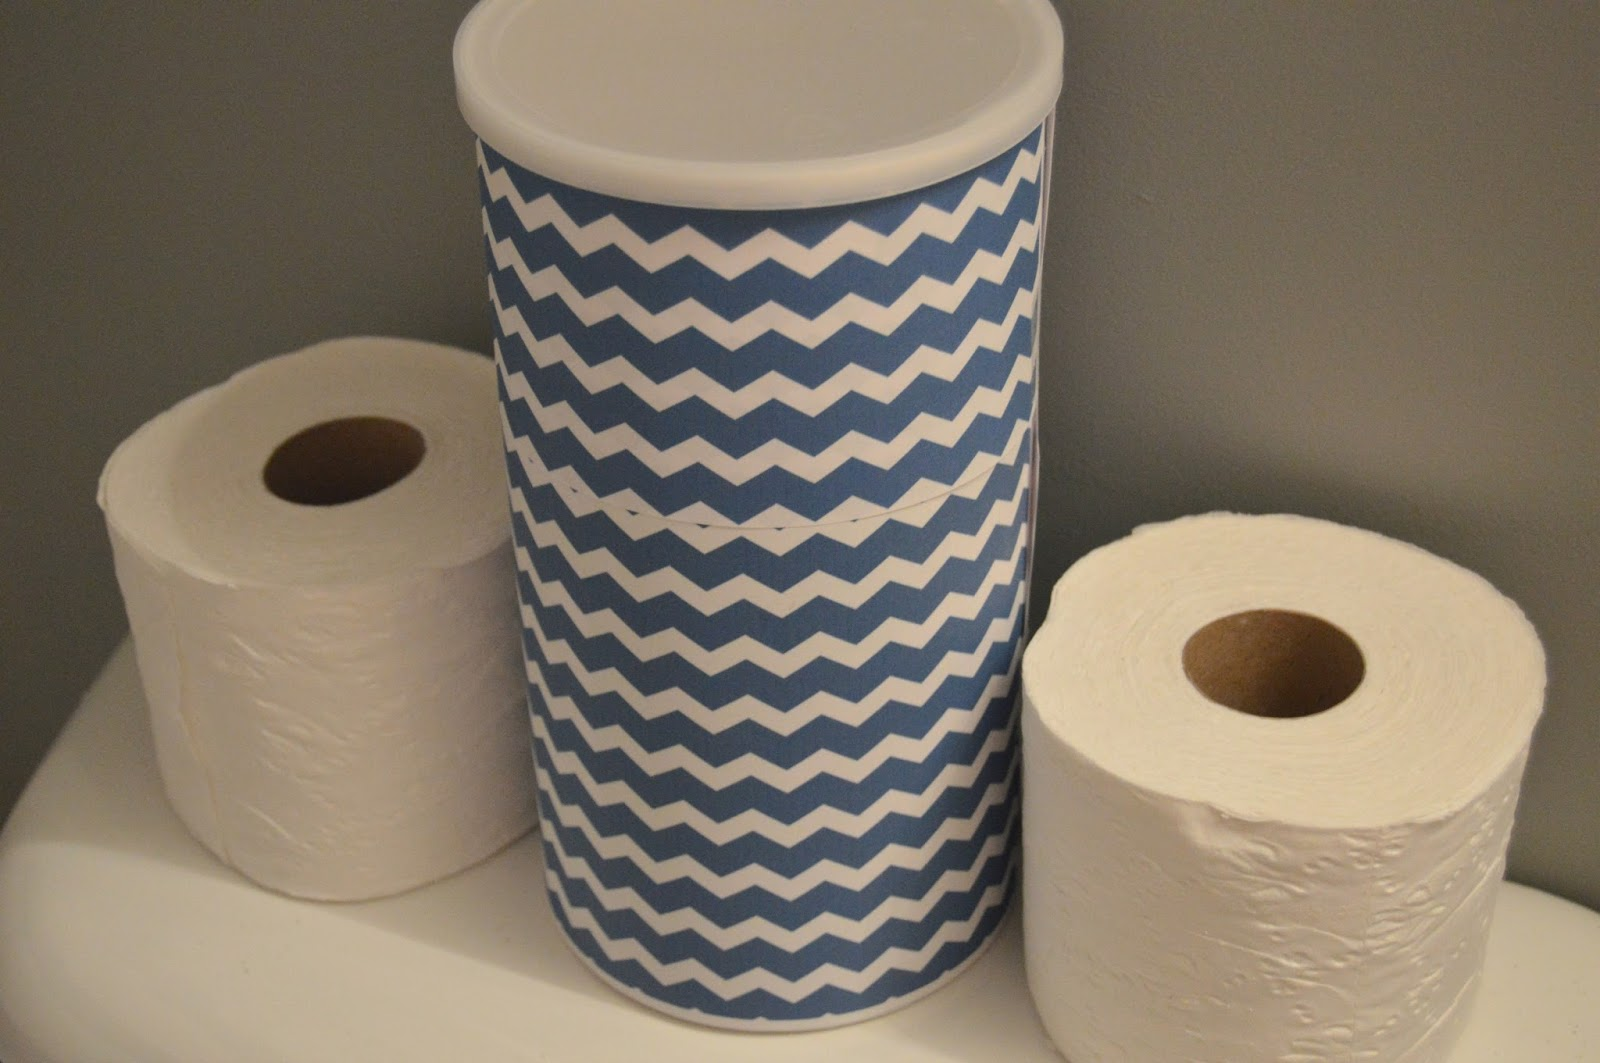 Pop Two Rolls In Seal It Up And Conveniently Place Within Bathroom For Future Use Our Toilet Paper